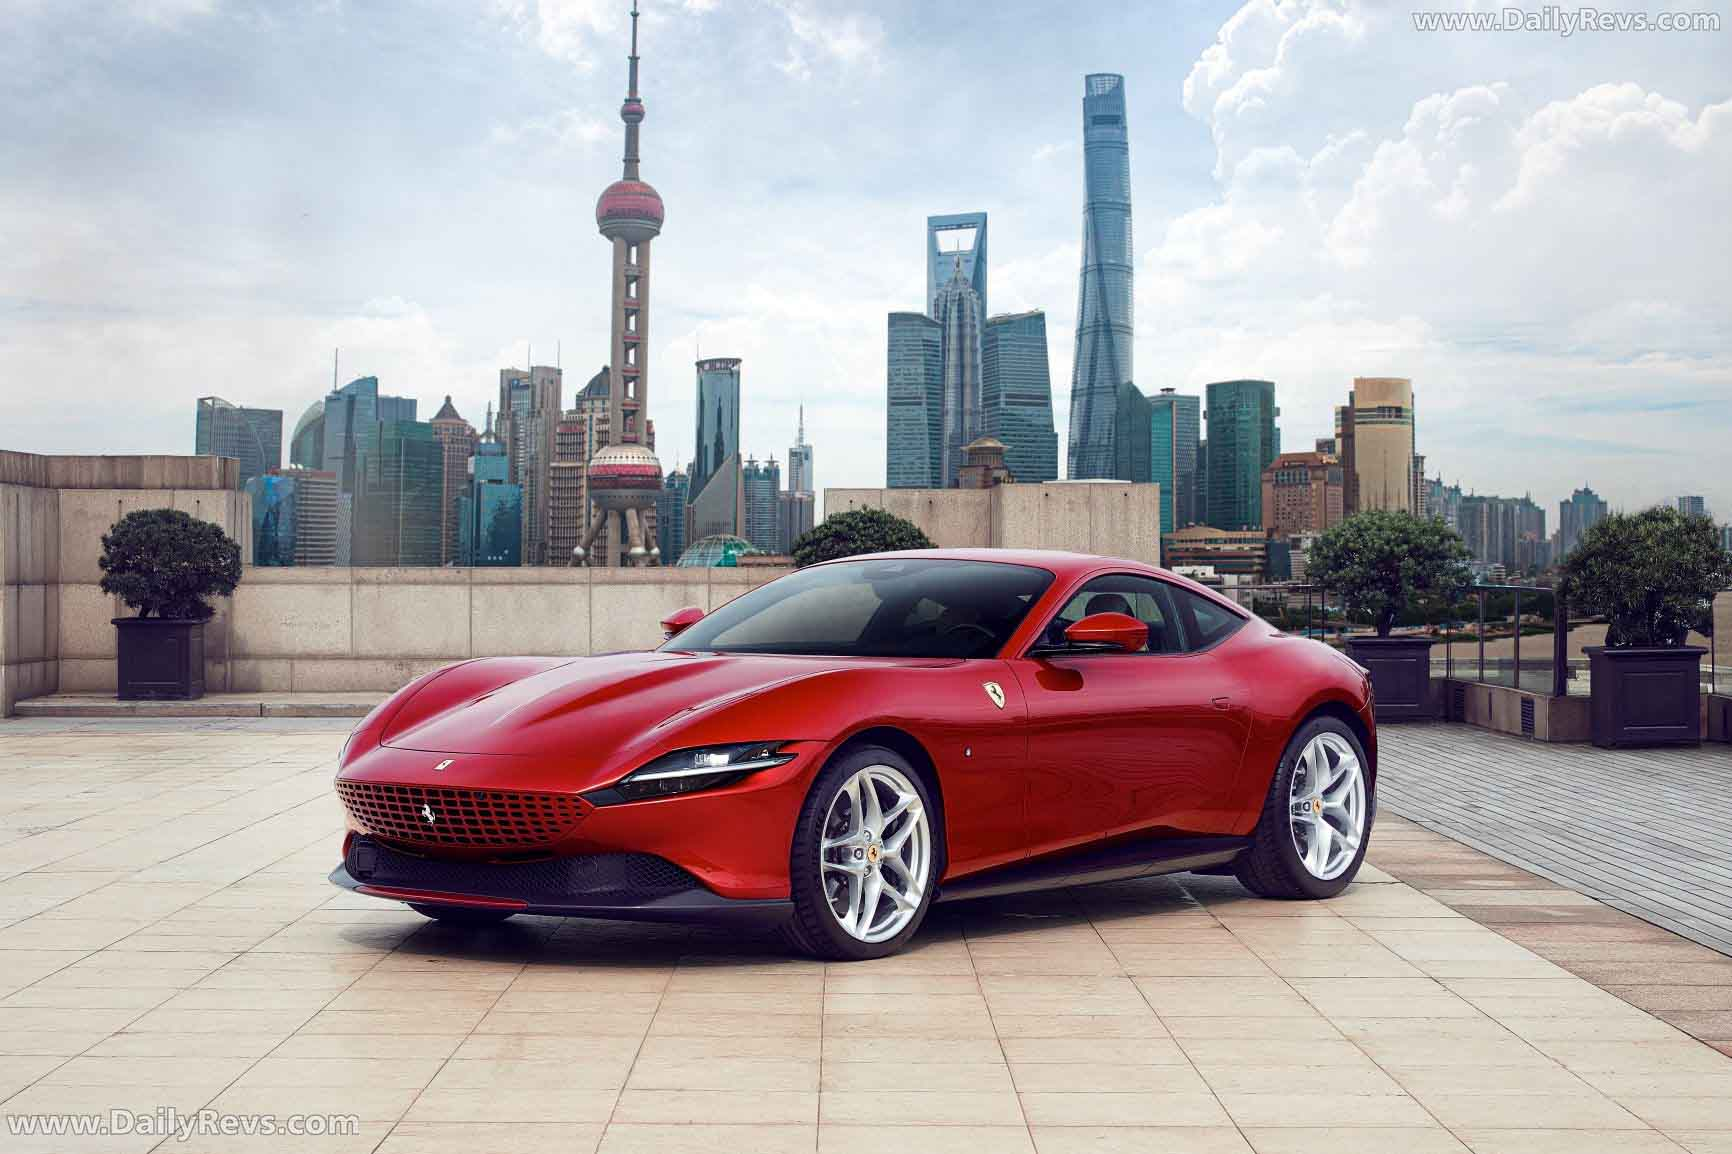 2020 Ferrari Roma Hd Pictures Videos Specs Informations Dailyrevs